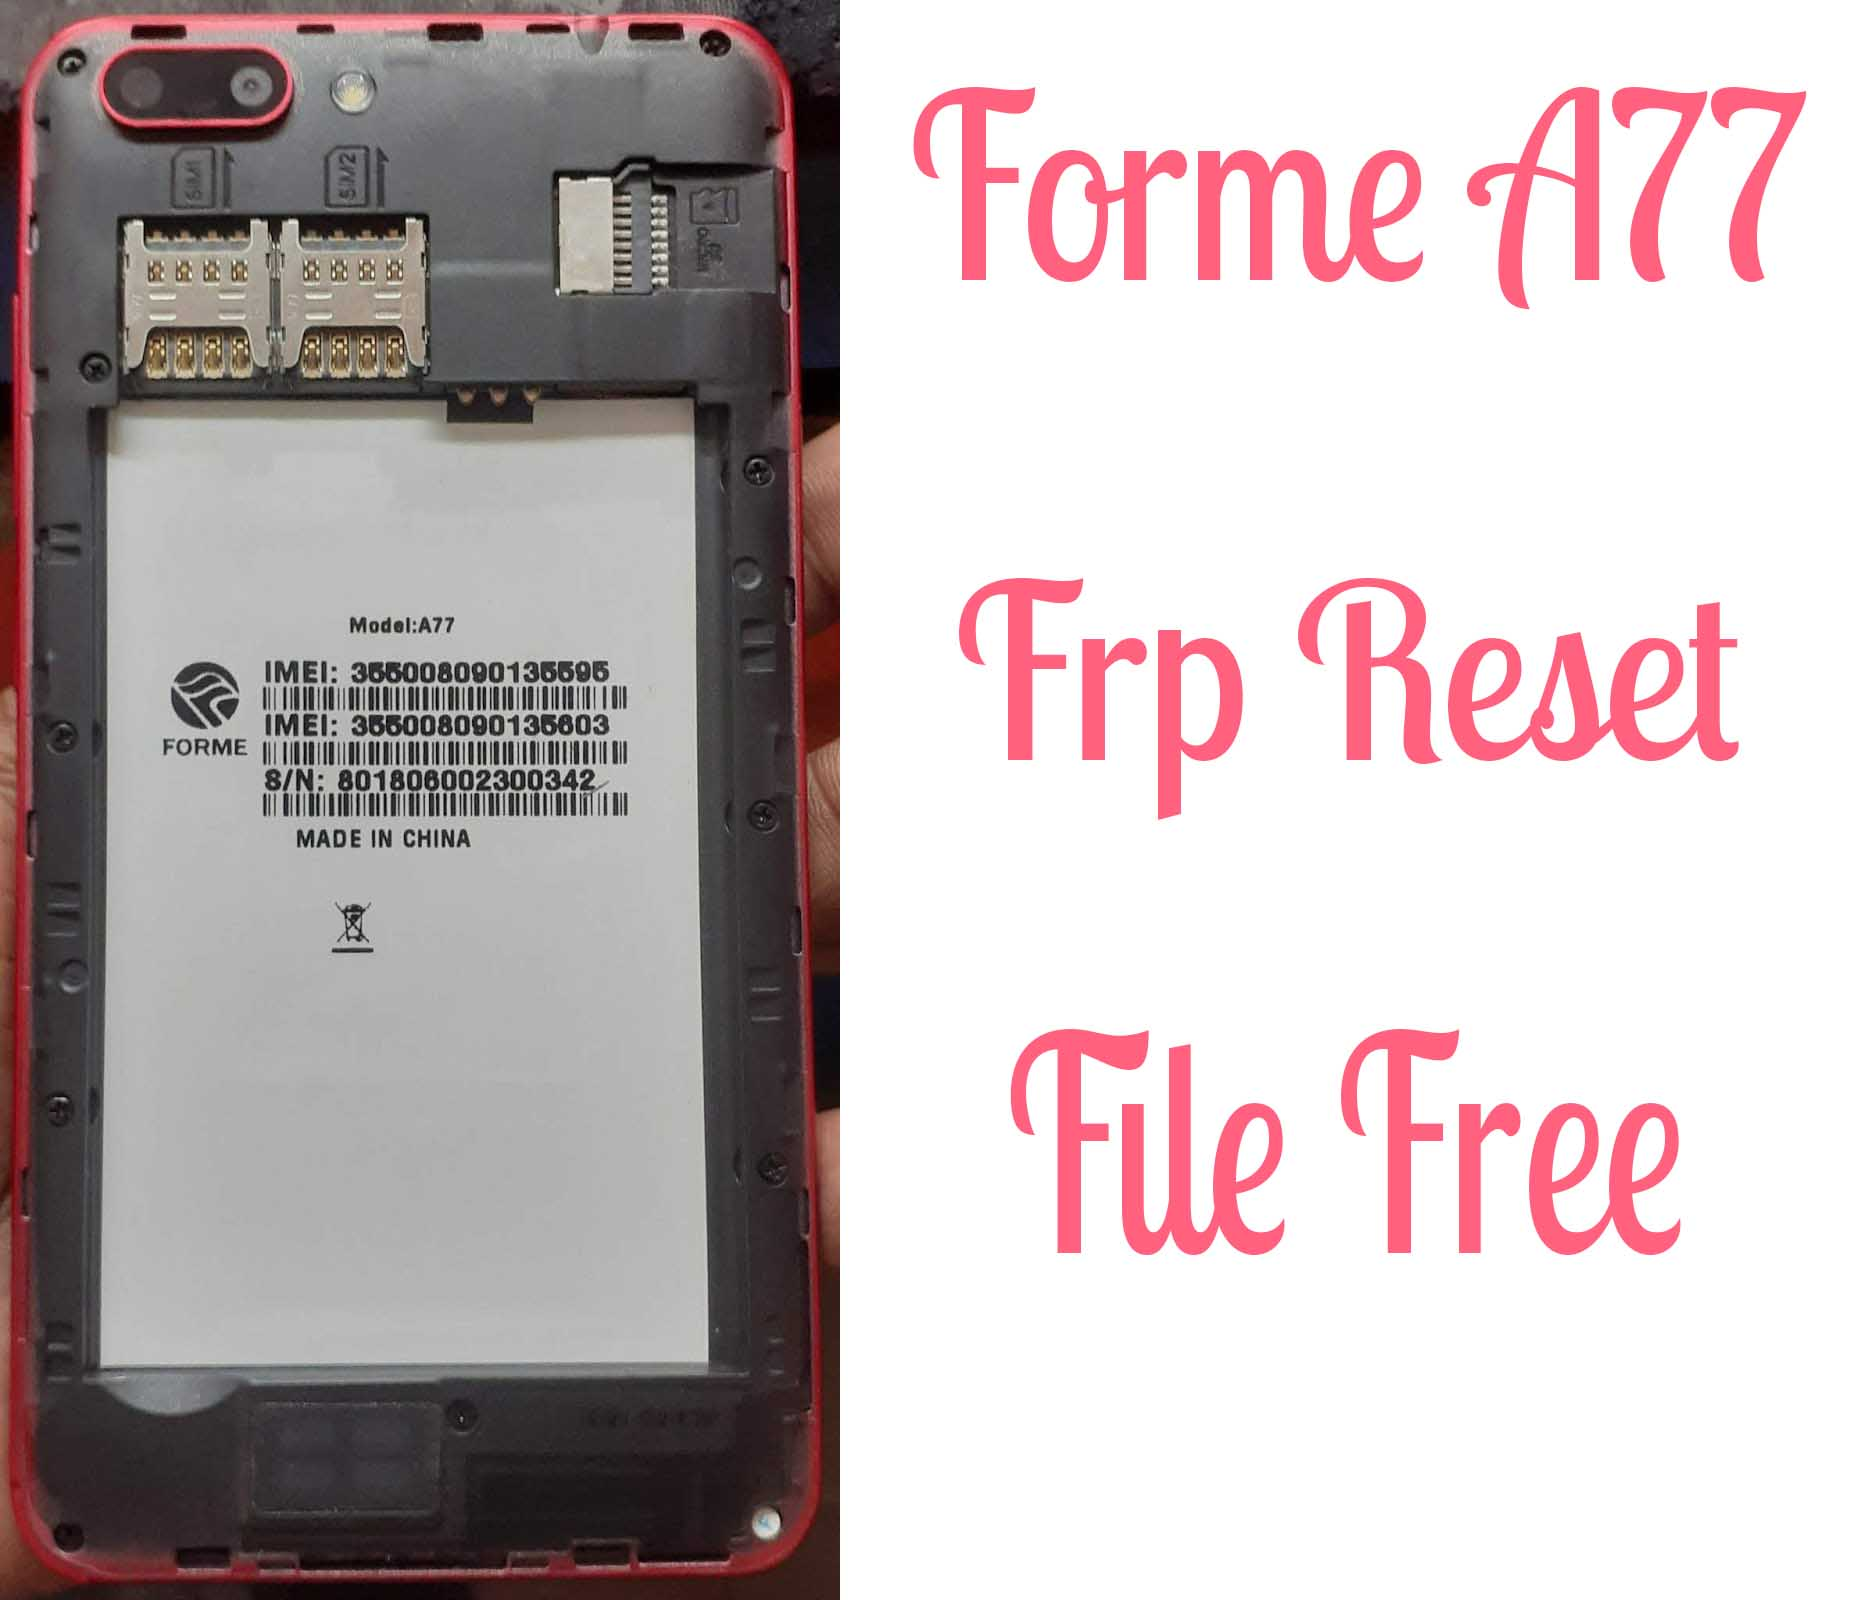 Forme A77 Frp Reset File Bypass Without Password